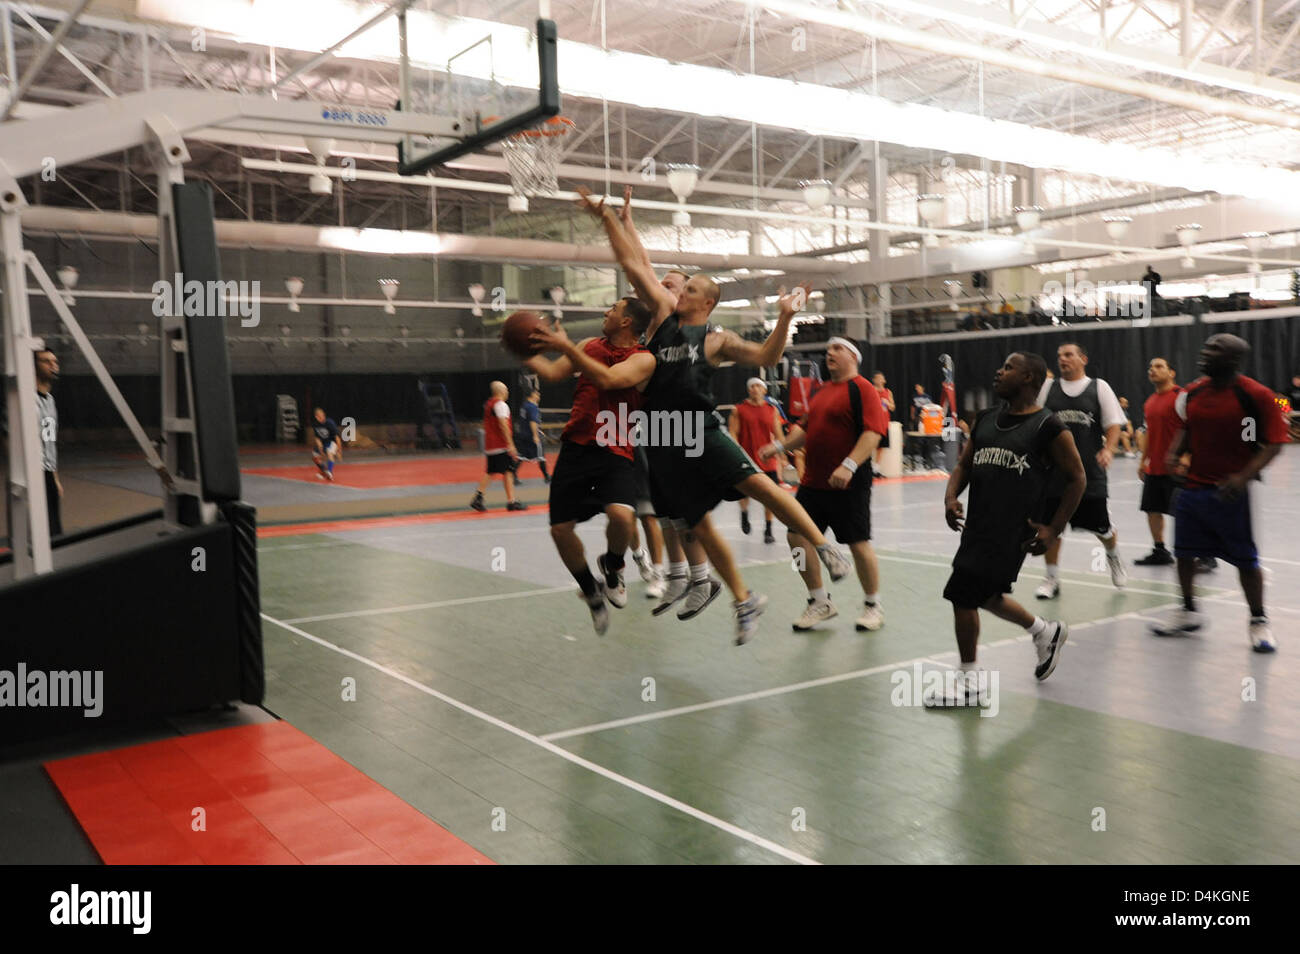 Fourth annual March Madness Sector New Orleans Basketball Tournament Stock Photo